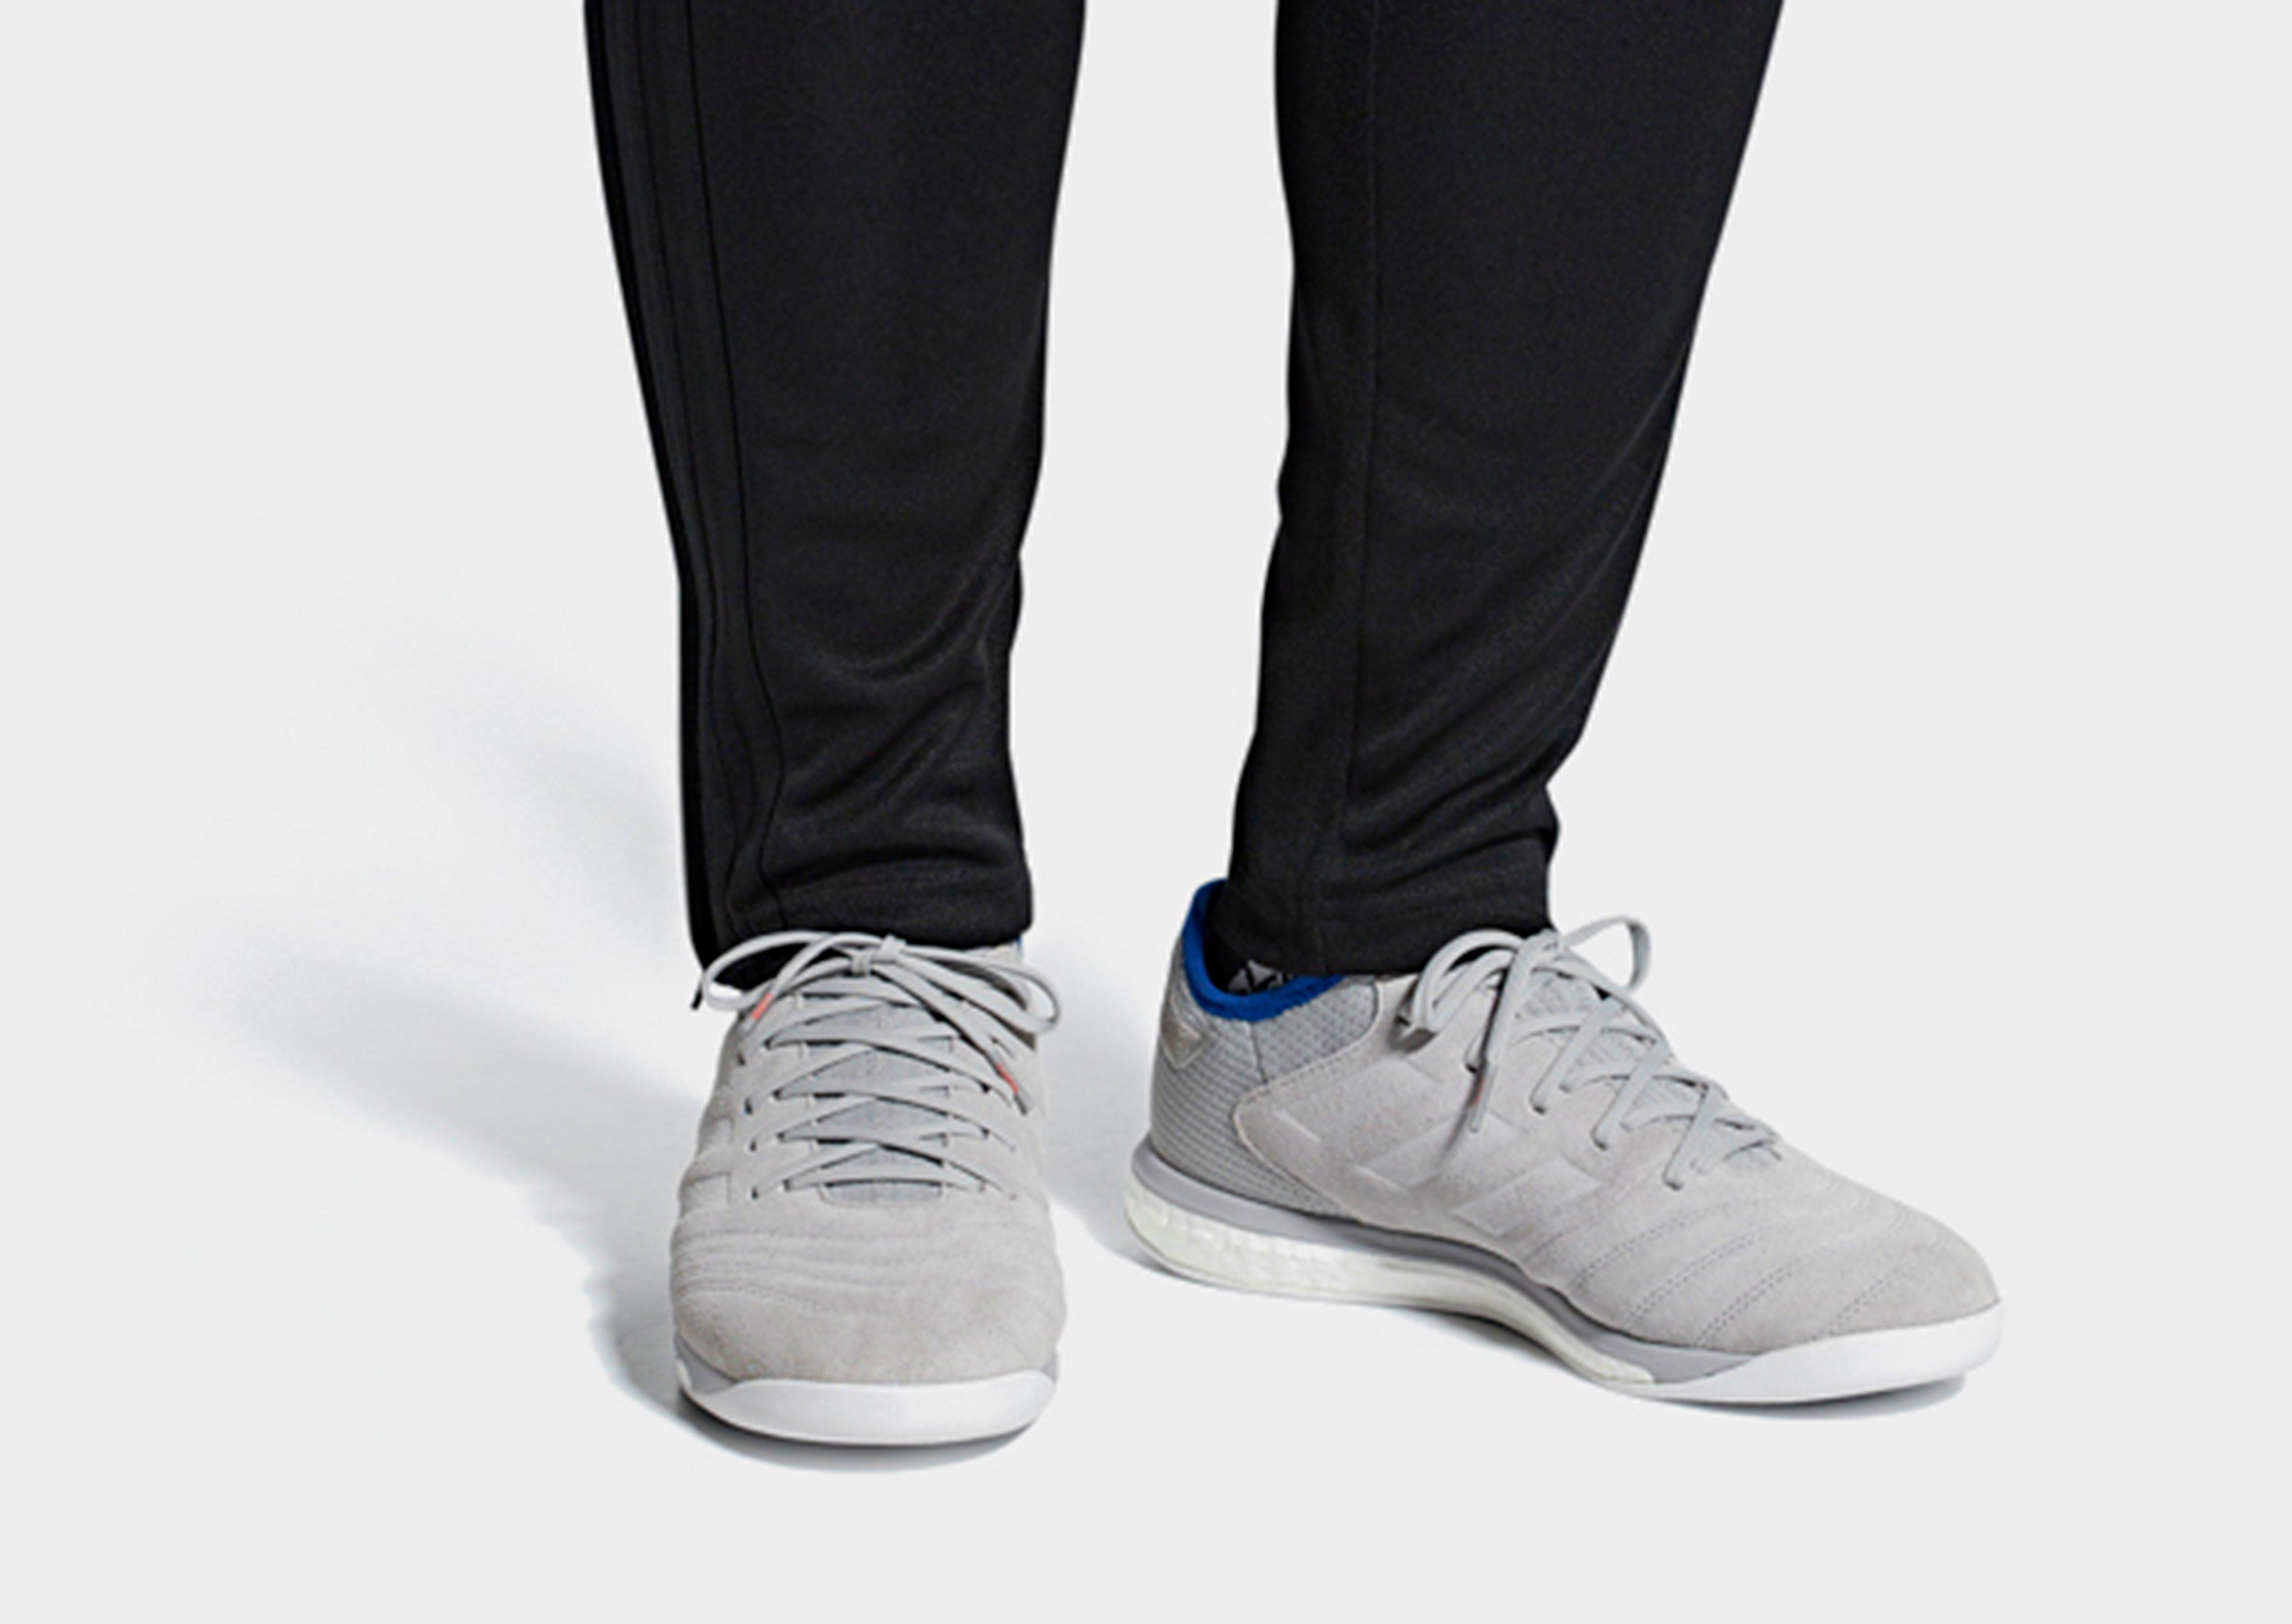 new product 5429c 09c1b Lyst - adidas Copa Tango 18.1 Trainers in Gray for Men